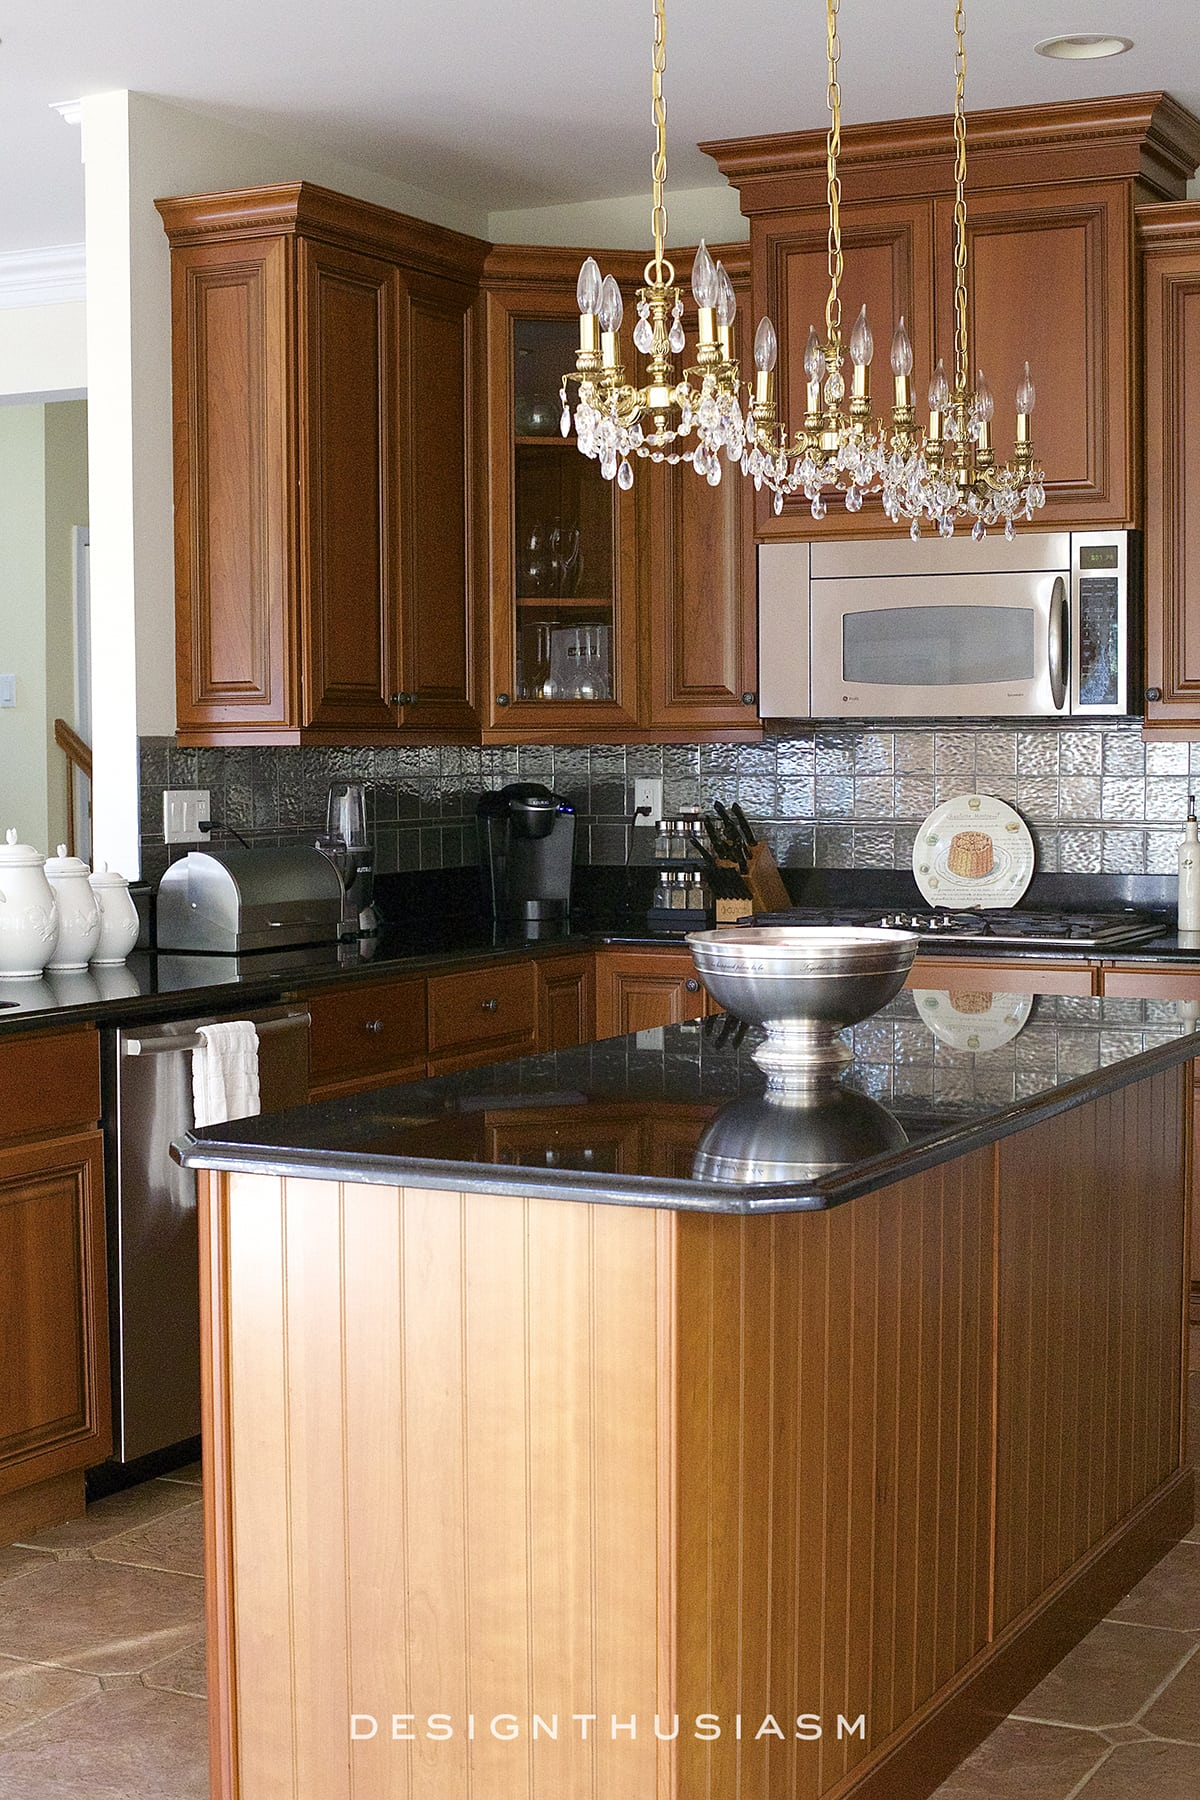 Dramatic Kitchen Renovation without Removing Cabinets | Designthusiasm.com